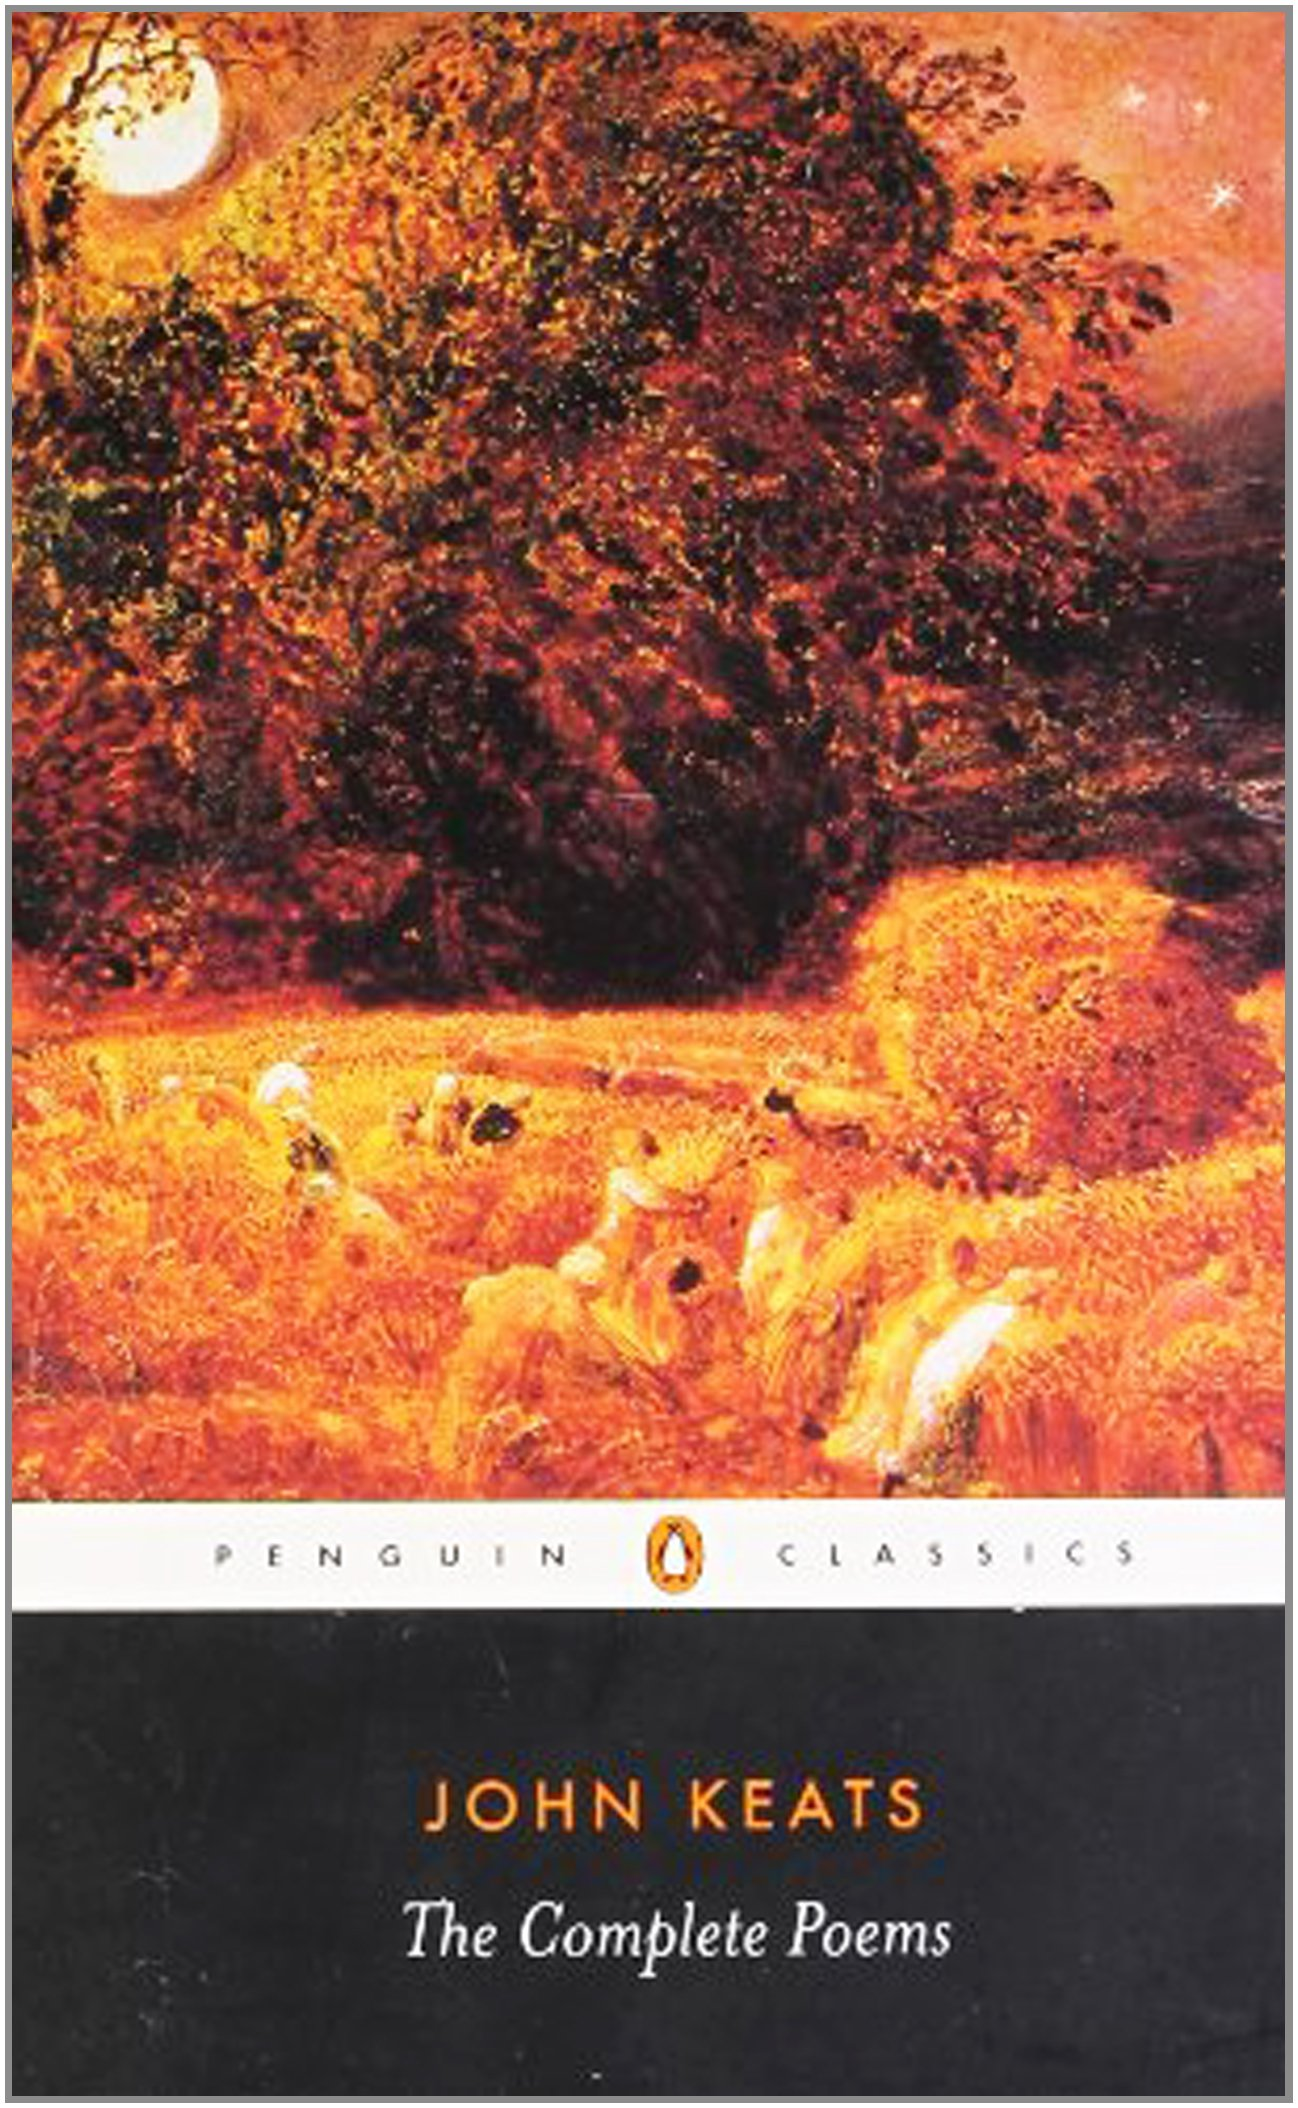 John Keats: Theplete Poems (penguin Classics): Amazon: John  Barnard: 9780140422108: Books